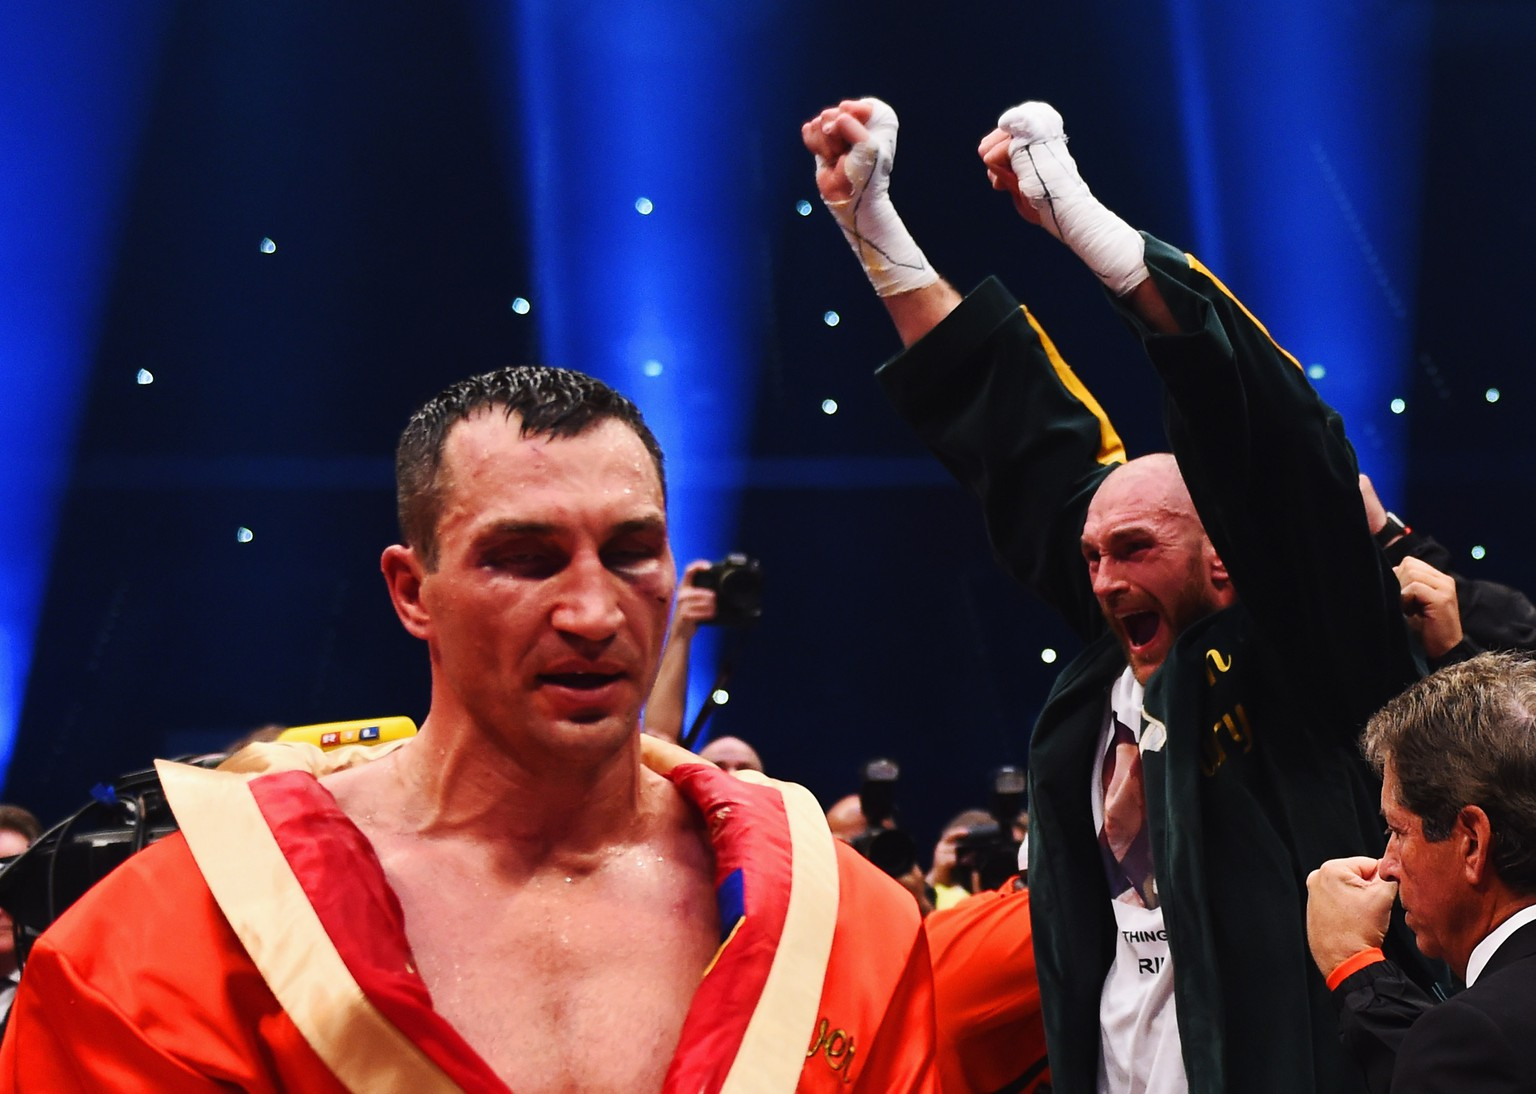 DUESSELDORF, GERMANY - NOVEMBER 28:  Tyson Fury celebrates as he defeats Wladimir Klitschko to become new World Heavyweight Champion during the IBF IBO WBA WBO Heavyweight World Championship contest at Esprit-Arena on November 28, 2015 in Duesseldorf, Germany.  (Photo by Lars Baron/Bongarts/Getty Images)